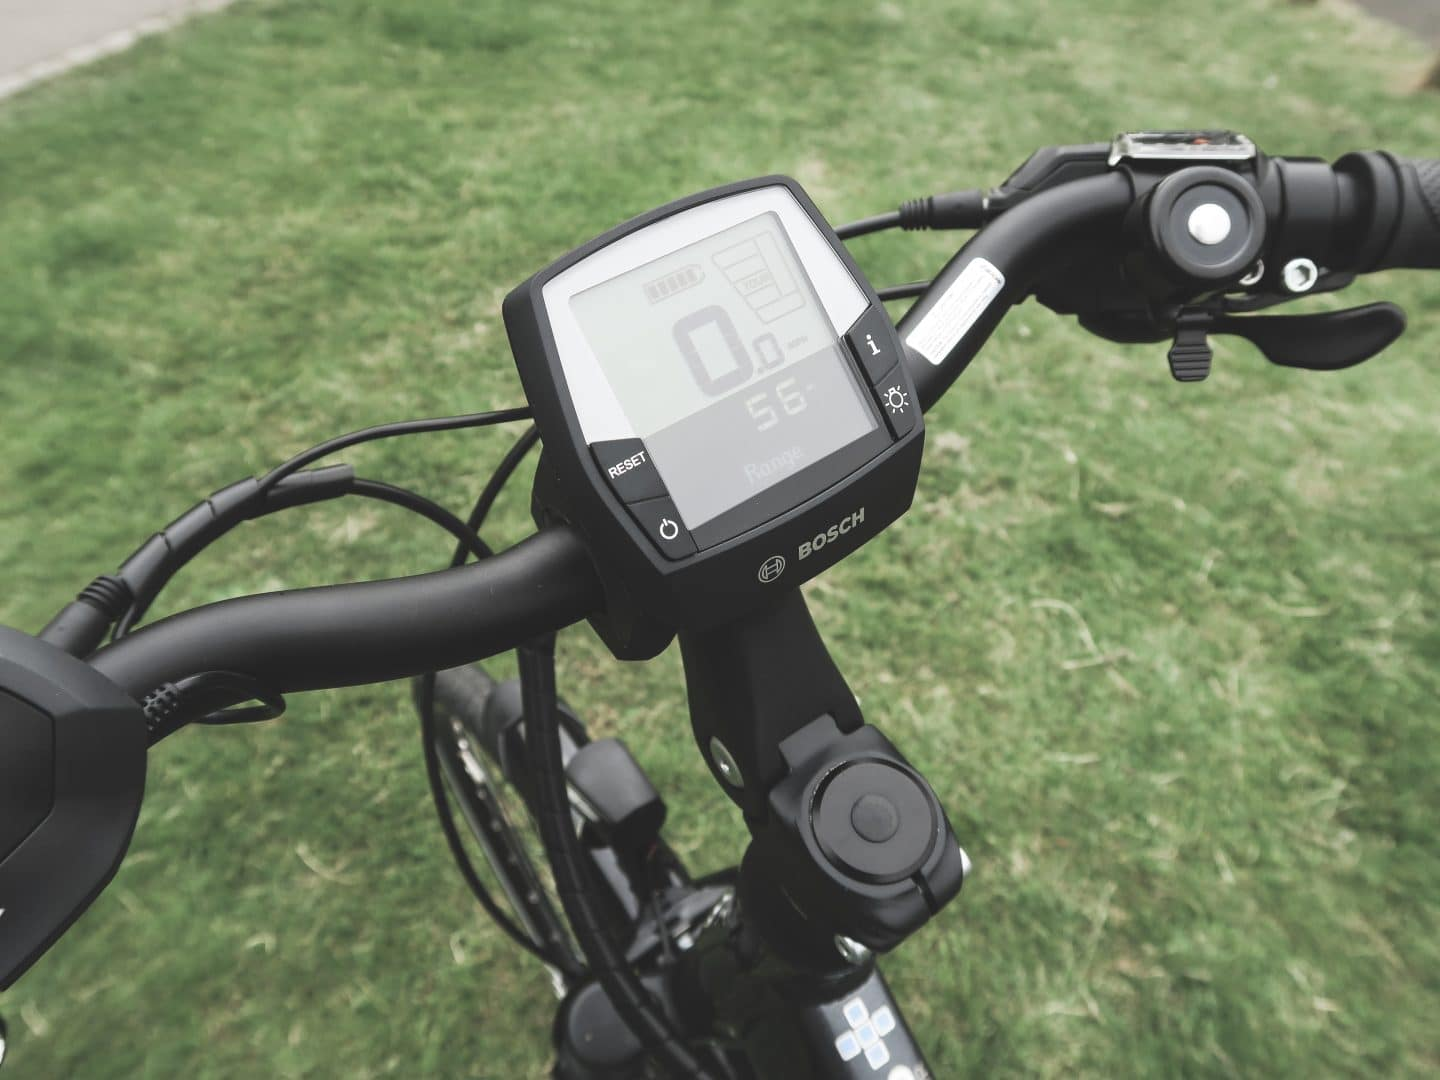 Raleigh Motus e-Bike Controls | Curiously Conscious